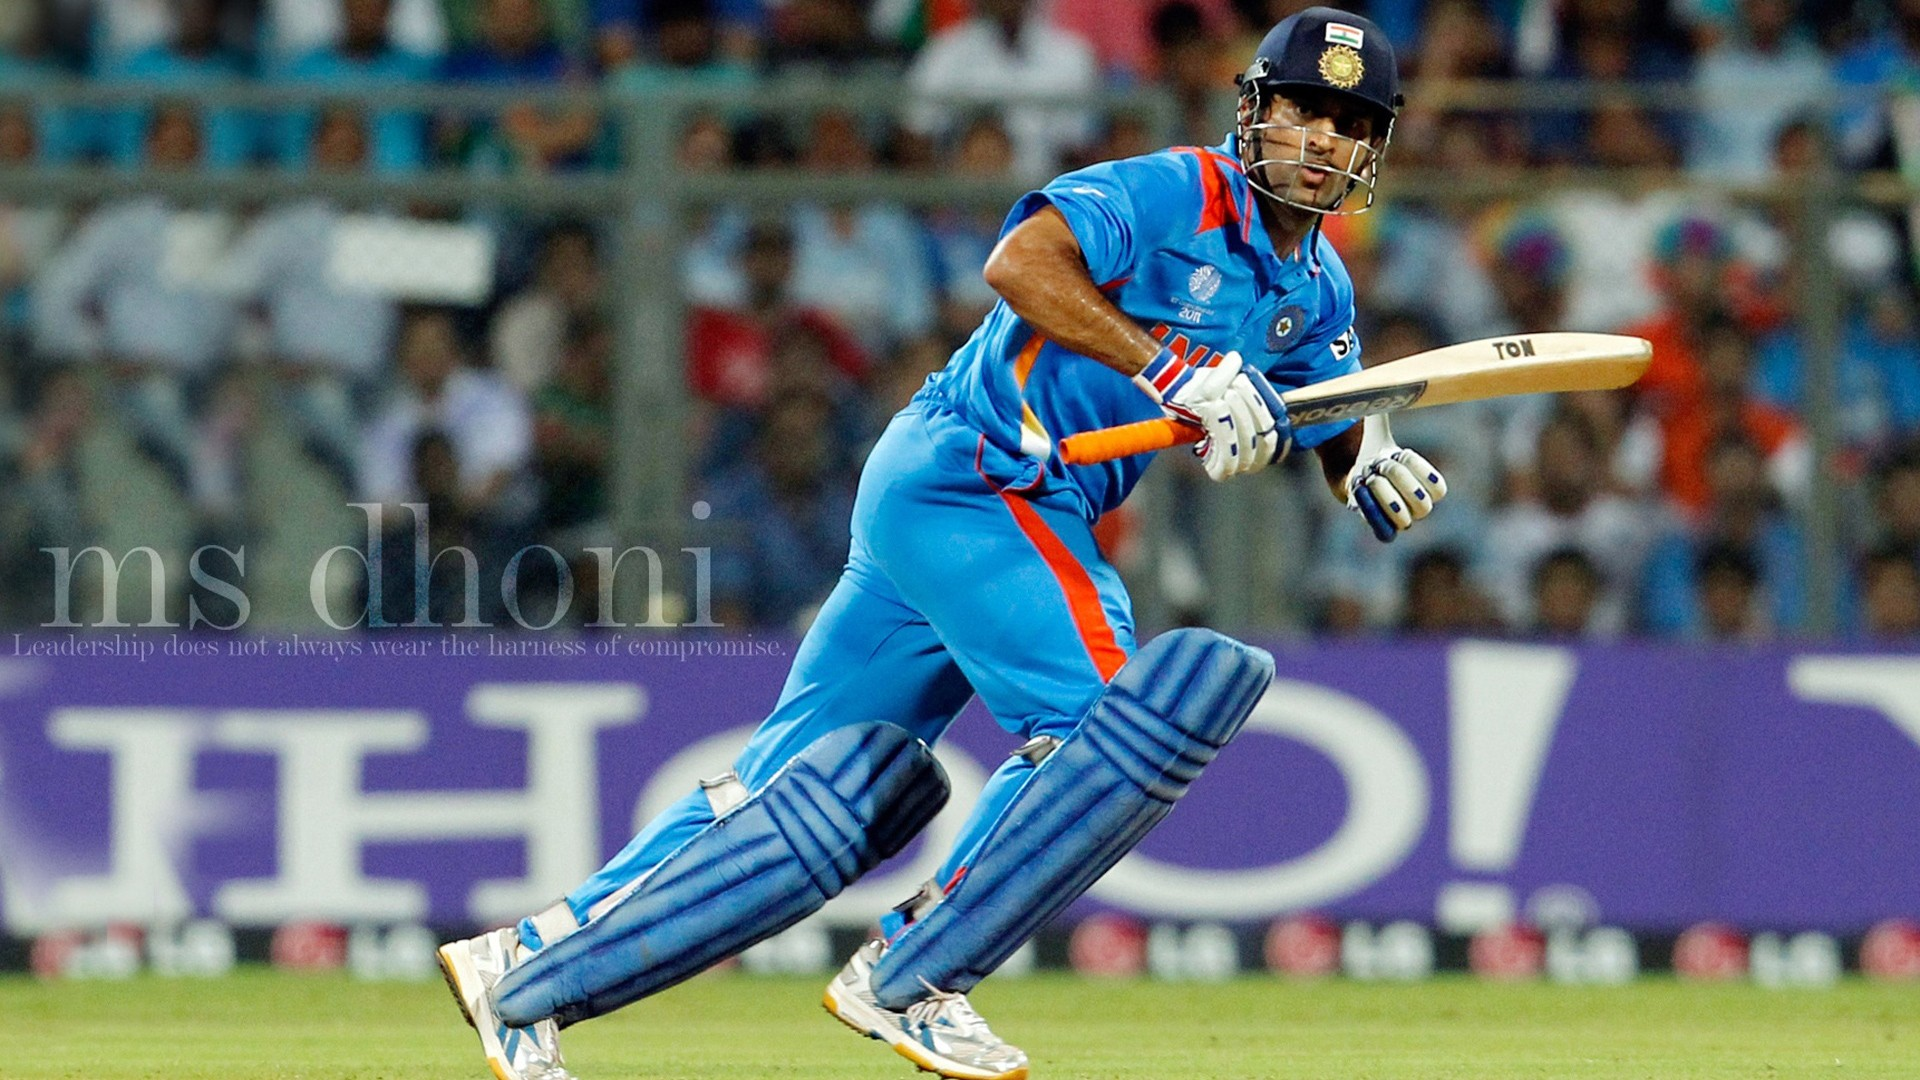 Iphone 5s Beach Wallpaper Ms Dhoni Wallpapers Hd Wallpapers Id 11131